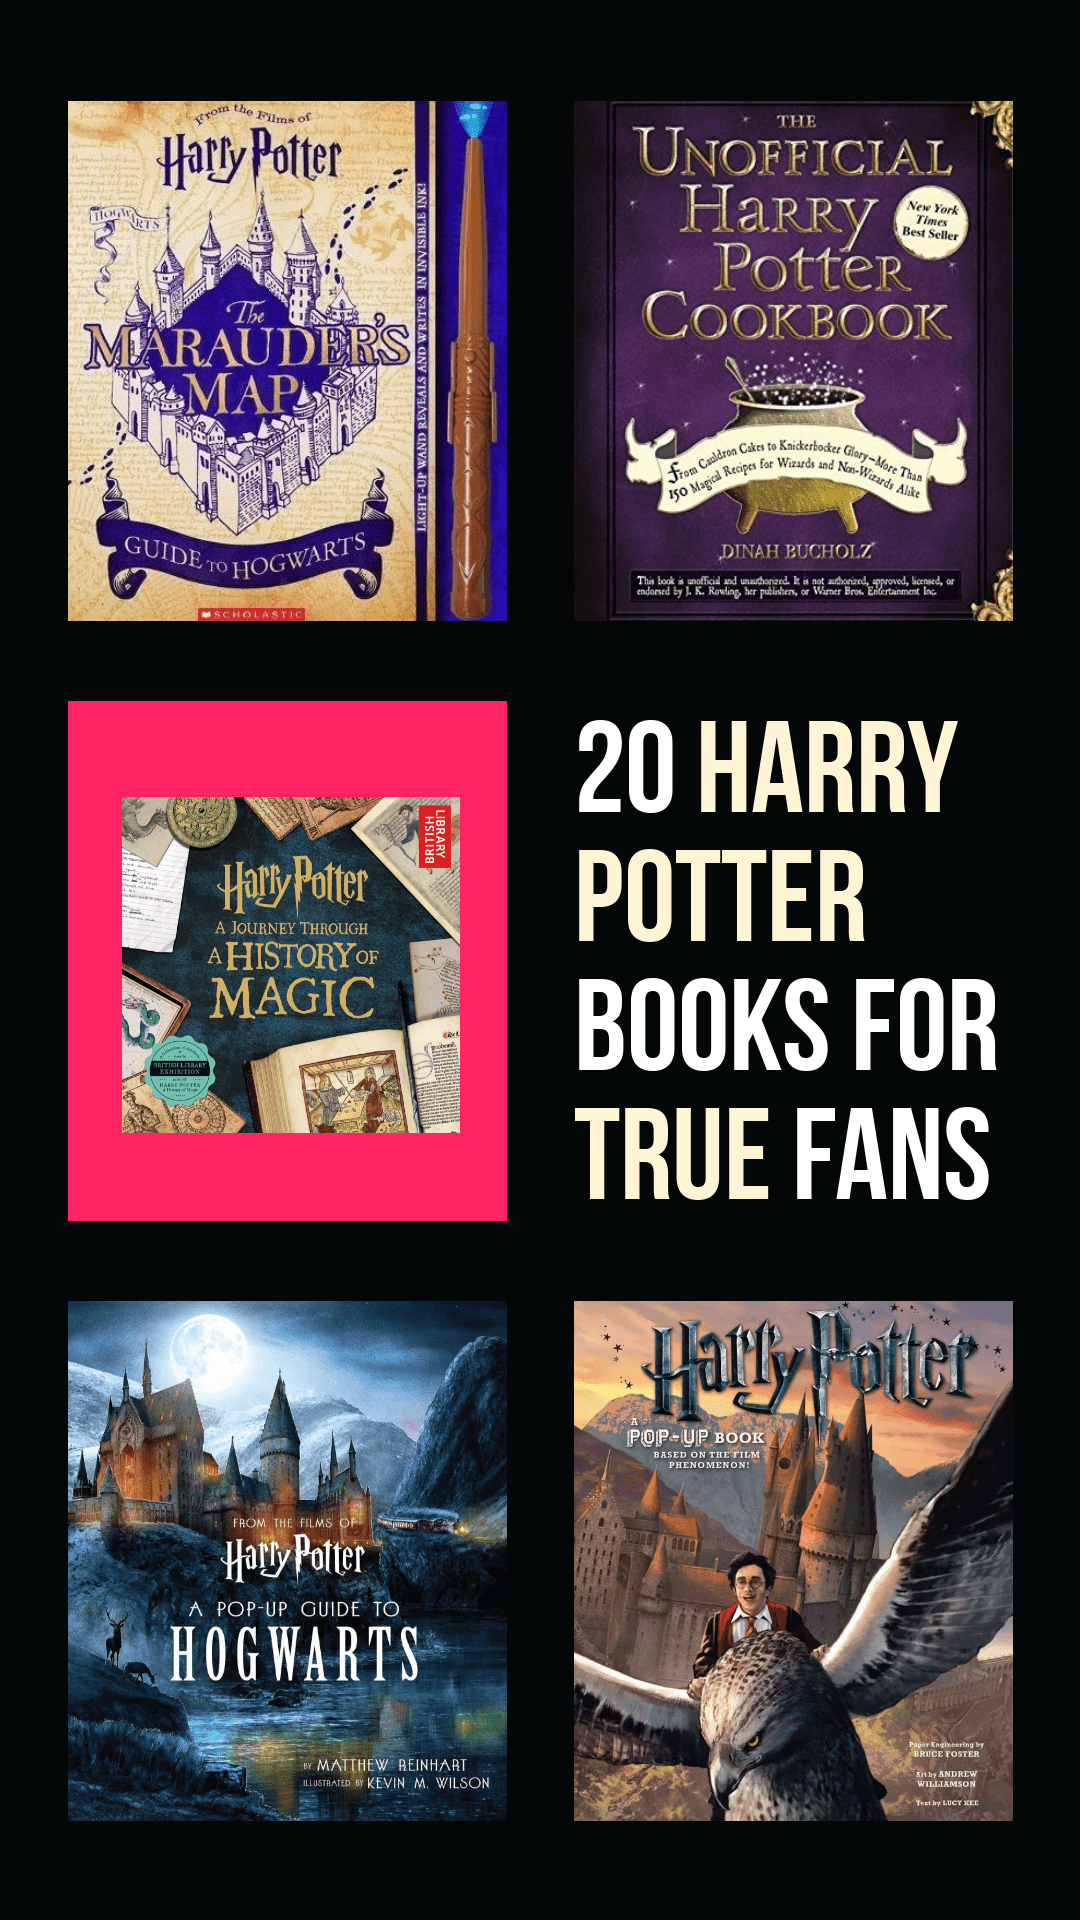 Did you know that this year is Harry Potter's 20th Anniversary in the US?  If you're as obsessed with The Boy Who Lived as I am, you'll want to grab these 20 must-have books for true Harry Potter fans!